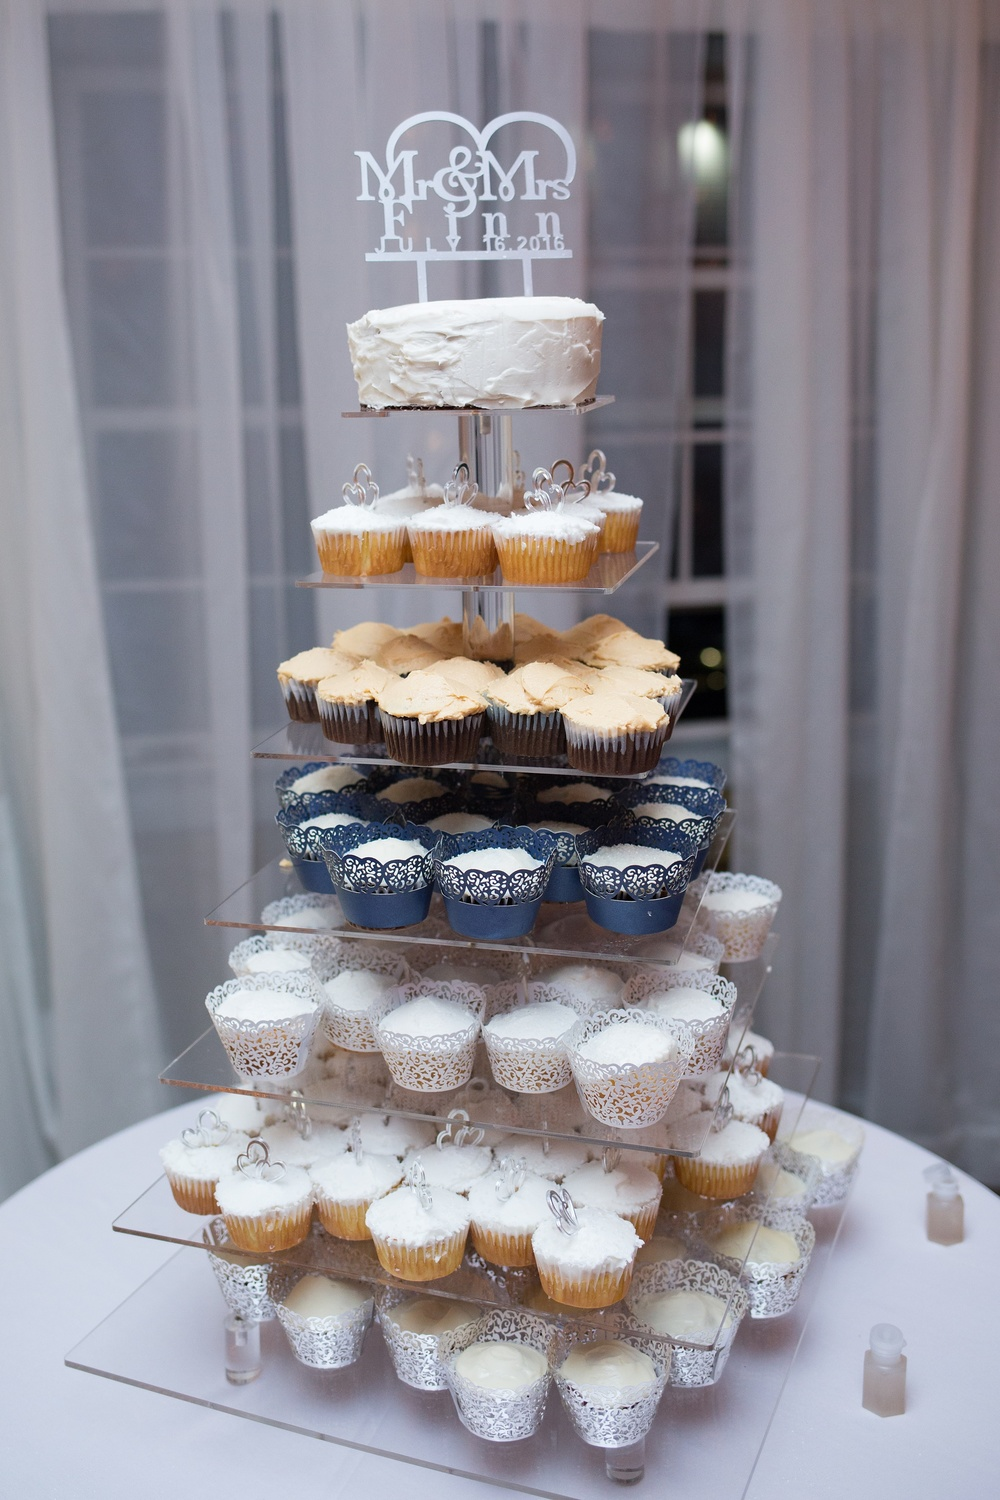 cupcakes as a wedding dessert